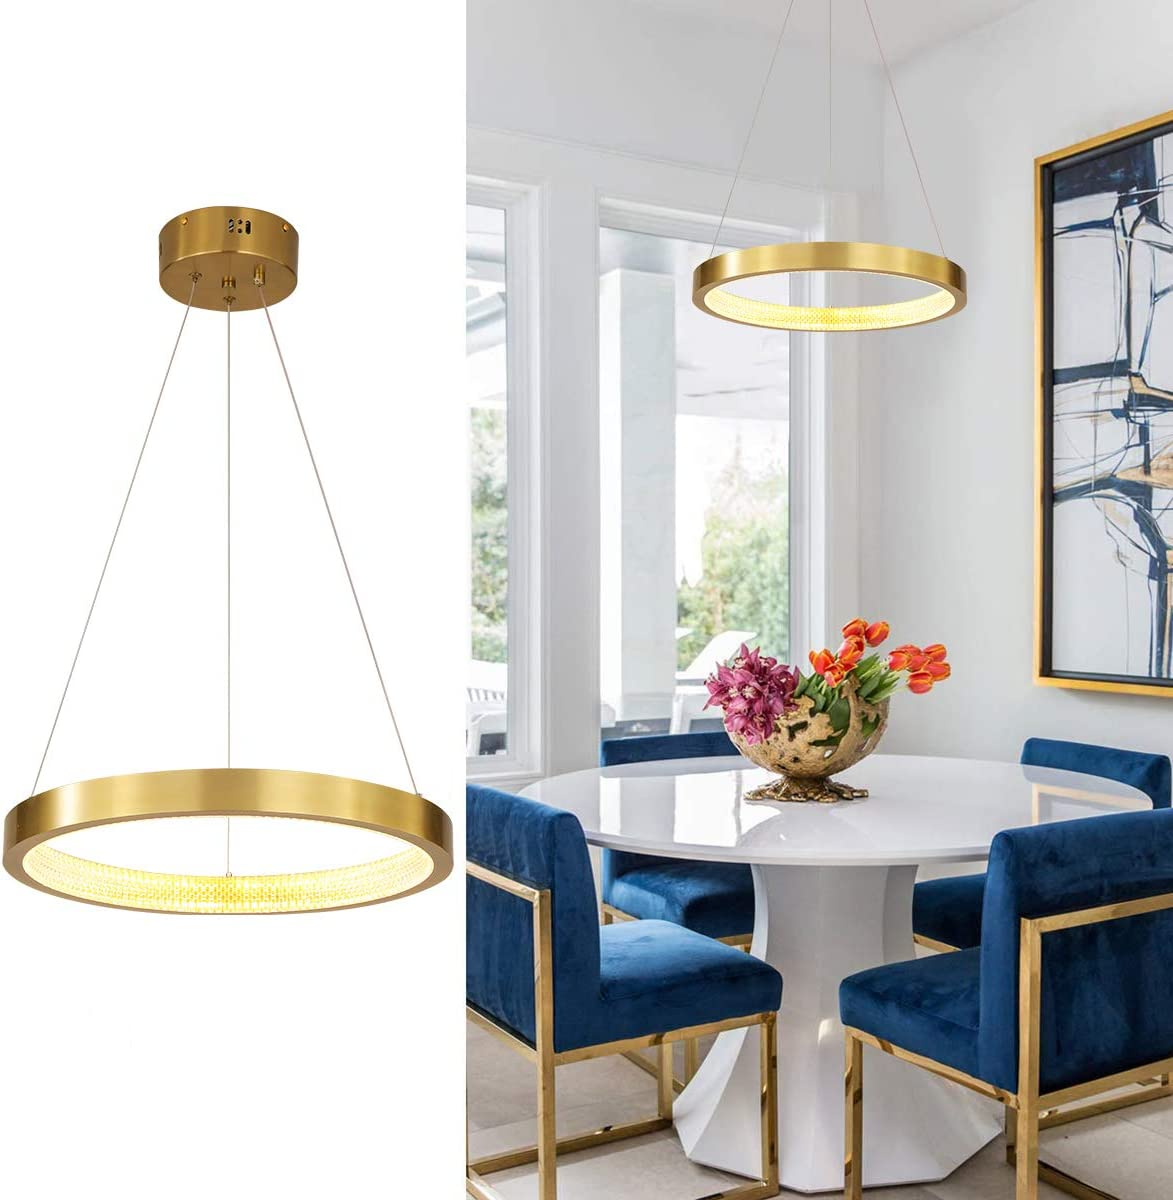 Jaycomey Modern Chandeliers,Circular Ring LED Chandelier,Gold Crystal Pendant Light Fixtures for Living Room Bedroom Restaurant Porch Dining Room Dia 15.7 Inches,Warm White 3000K